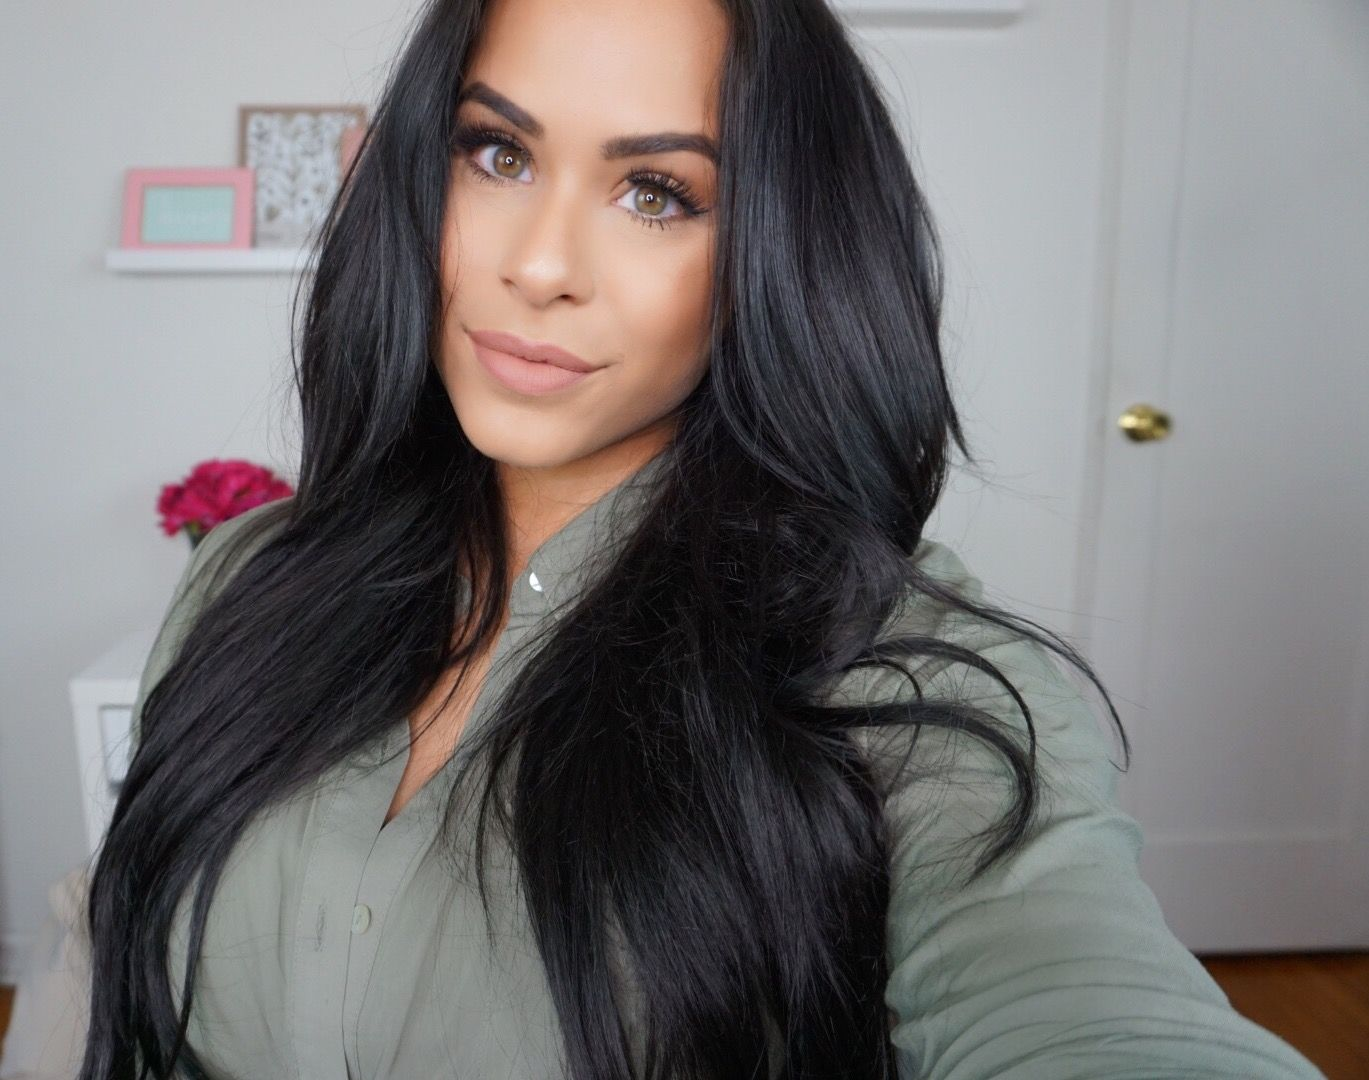 Melissaflores One Of My Favorite Youtube Artist Bloggers Love Her